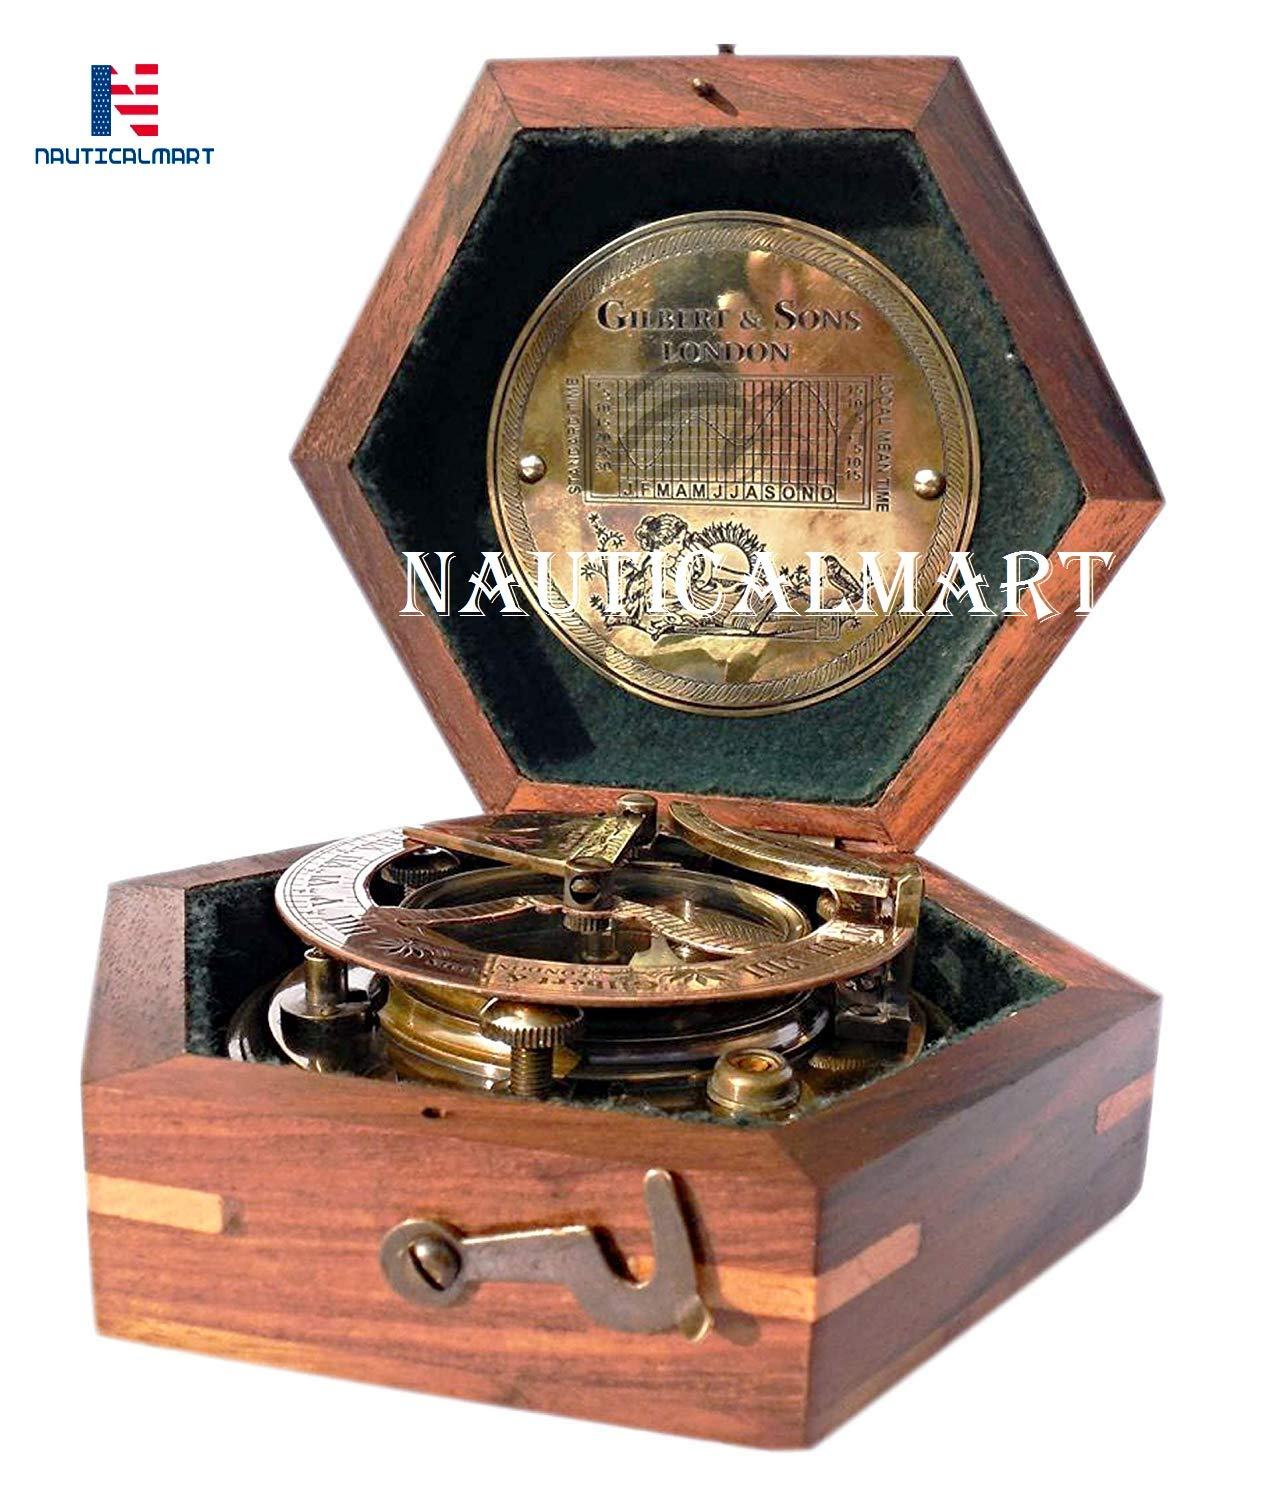 NAUTICALMART Steampunk for Solid Brass Sundial Compass in Fitted Wooden Box